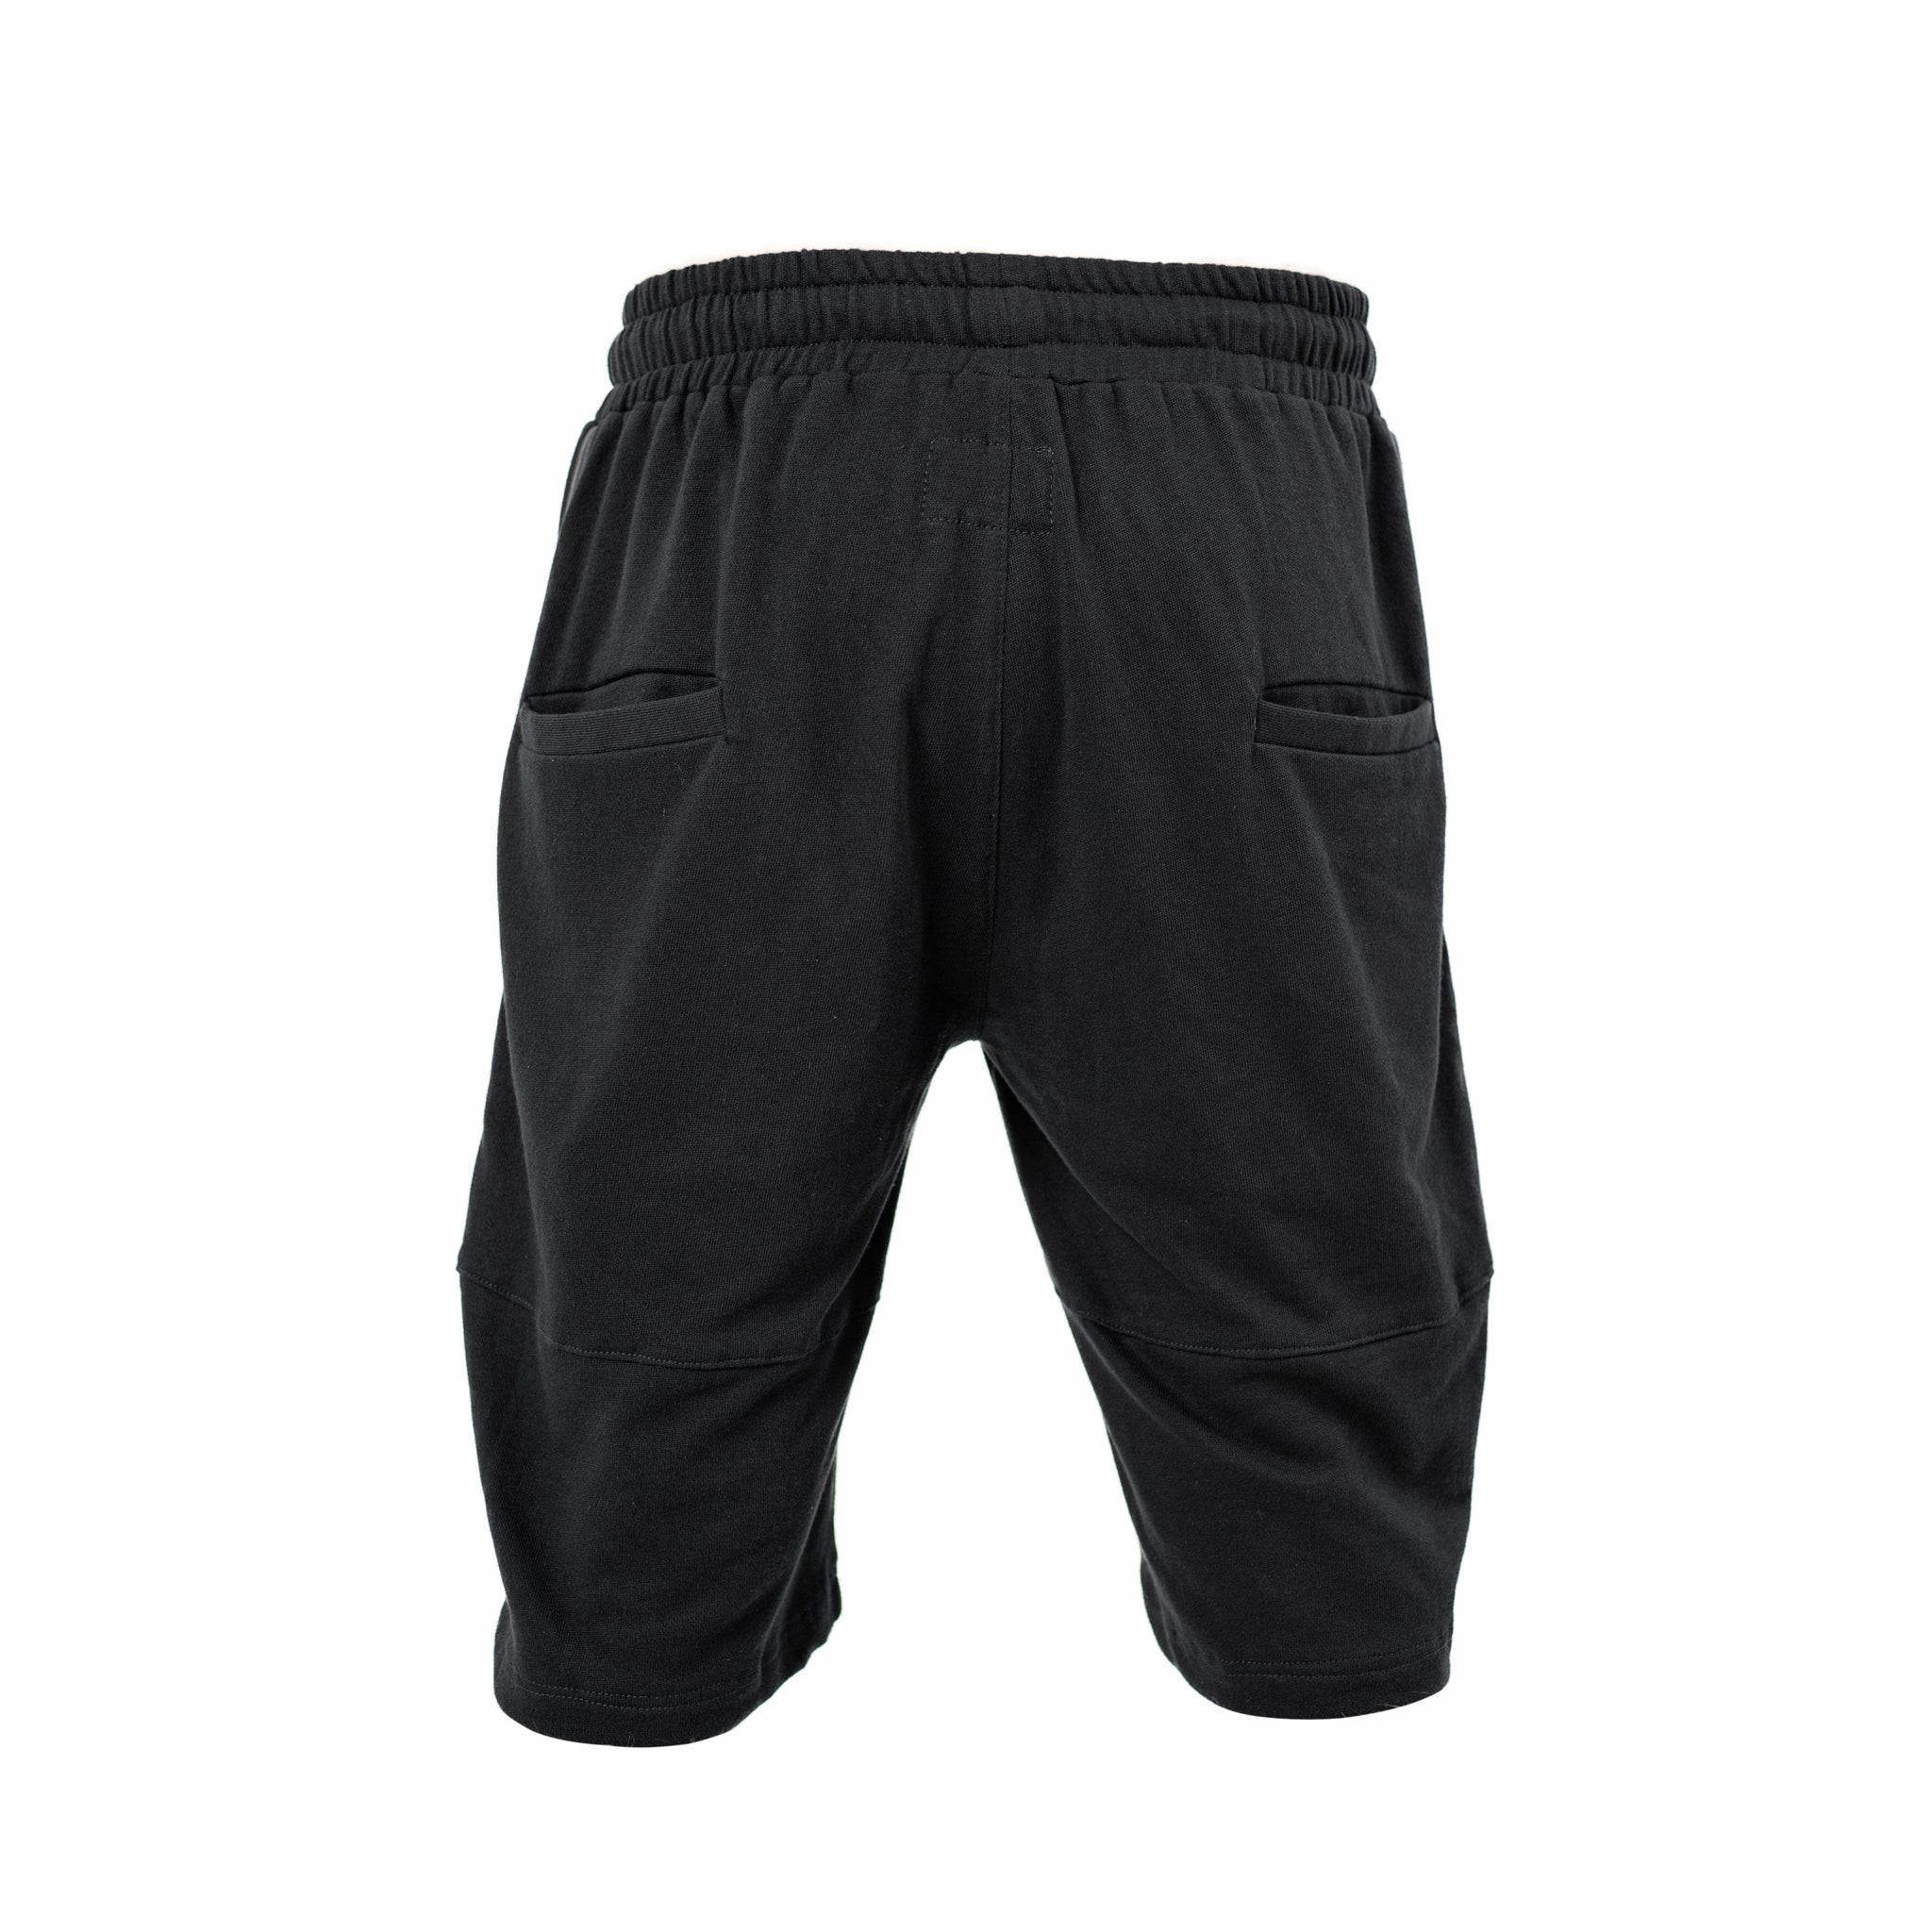 Kingfisher shorts - Organic cotton